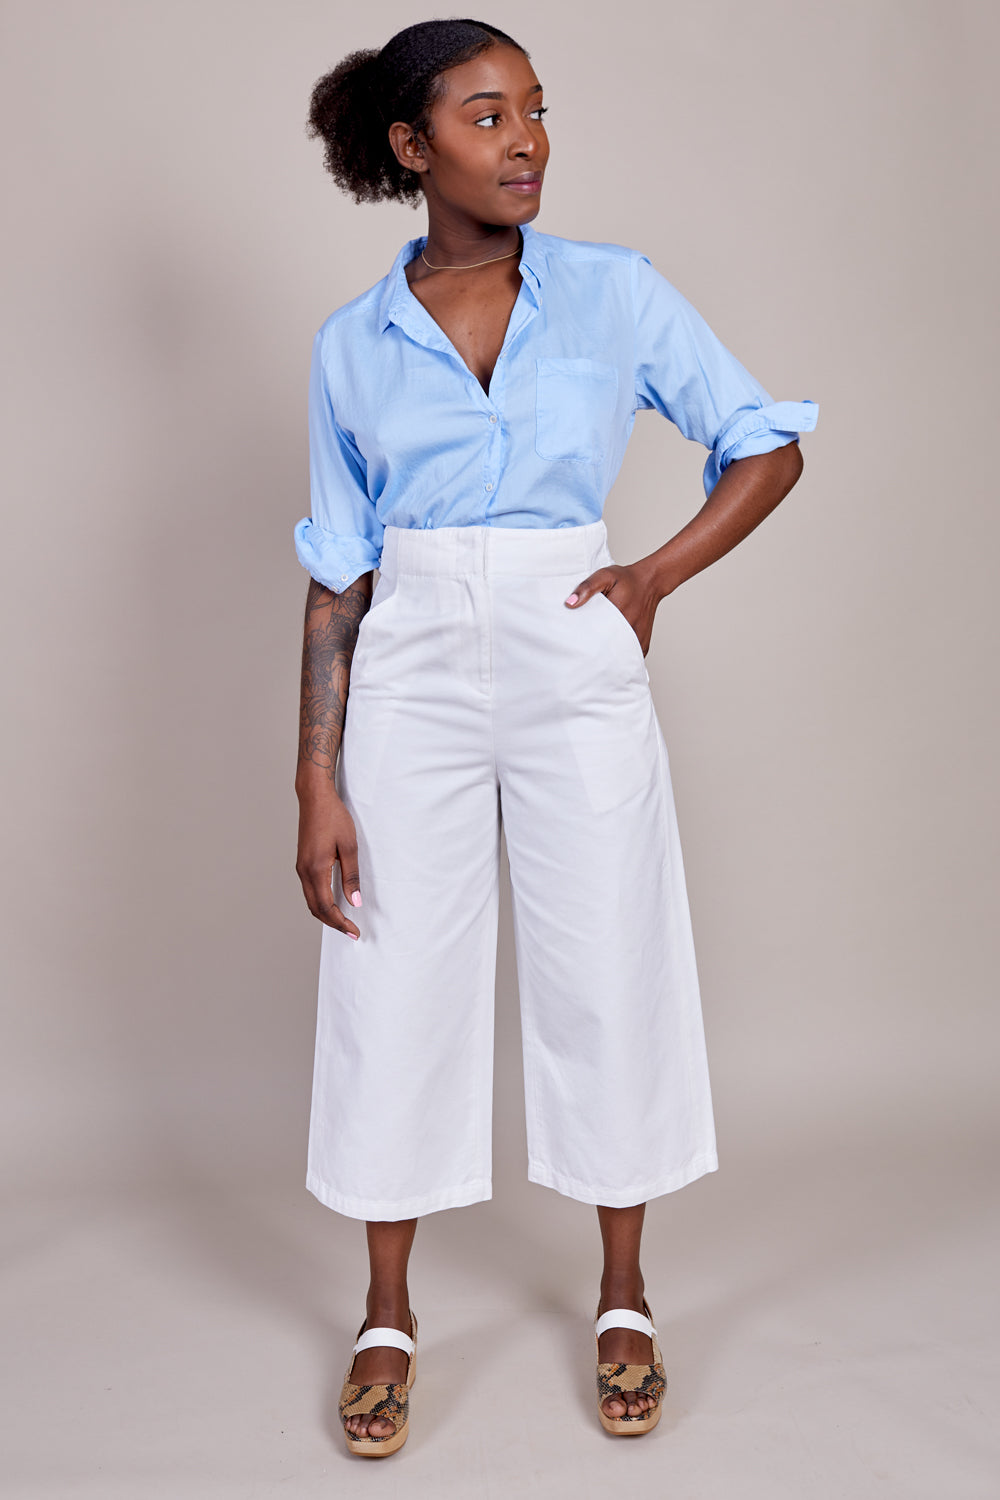 Twill Cropped Jean in White